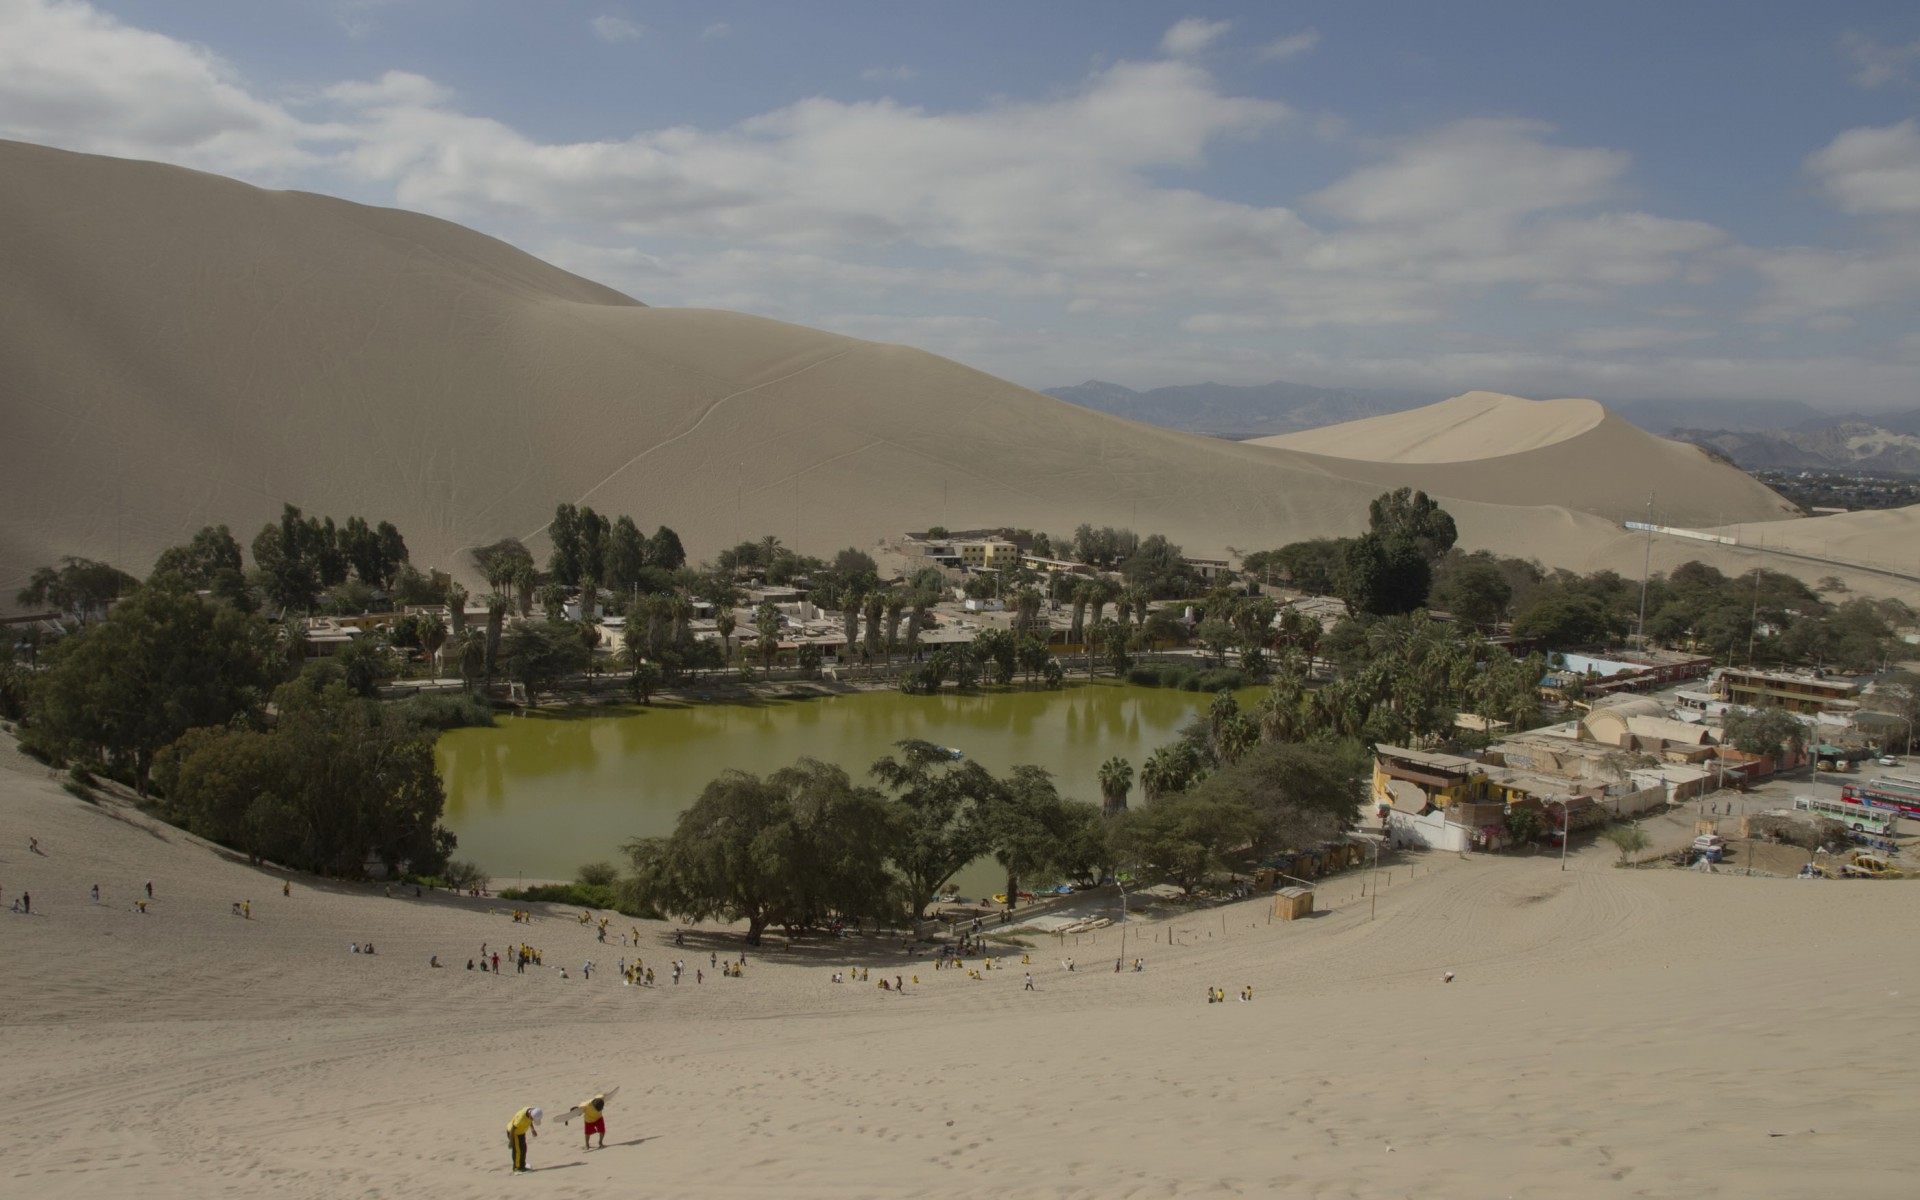 Oasis Wallpaper Iphone 5 Huacachina Oasis Desert Peru Wallpapers Huacachina Oasis